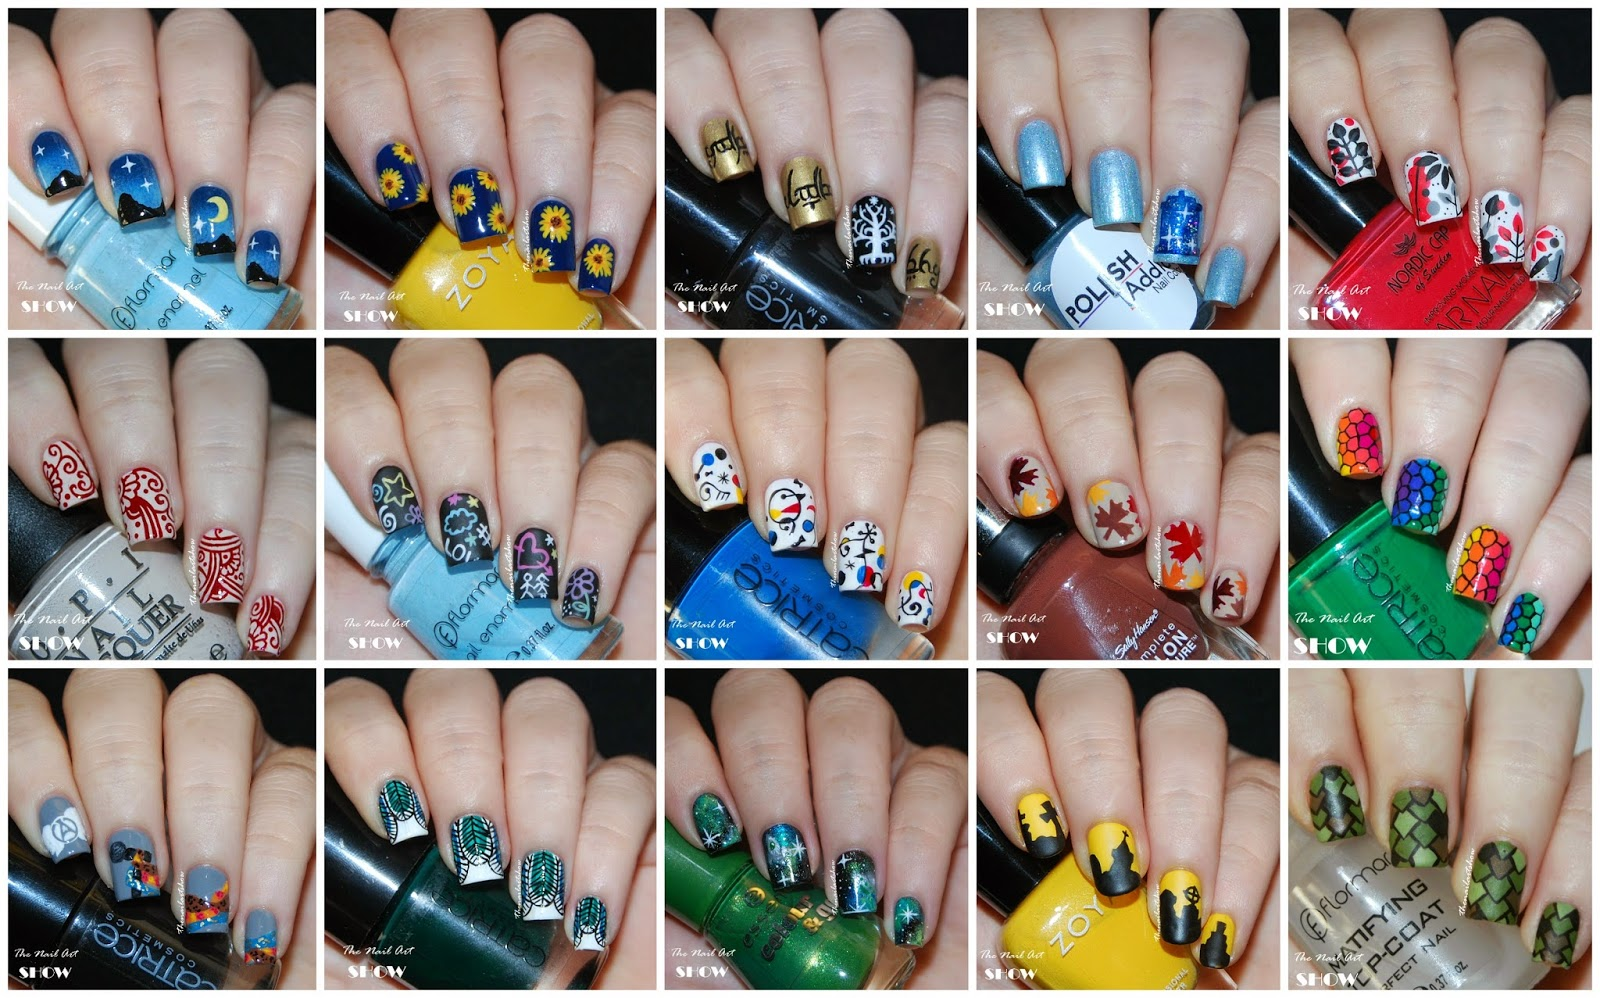 The nail art show 2014 nail art favorites which is your favorite prinsesfo Image collections